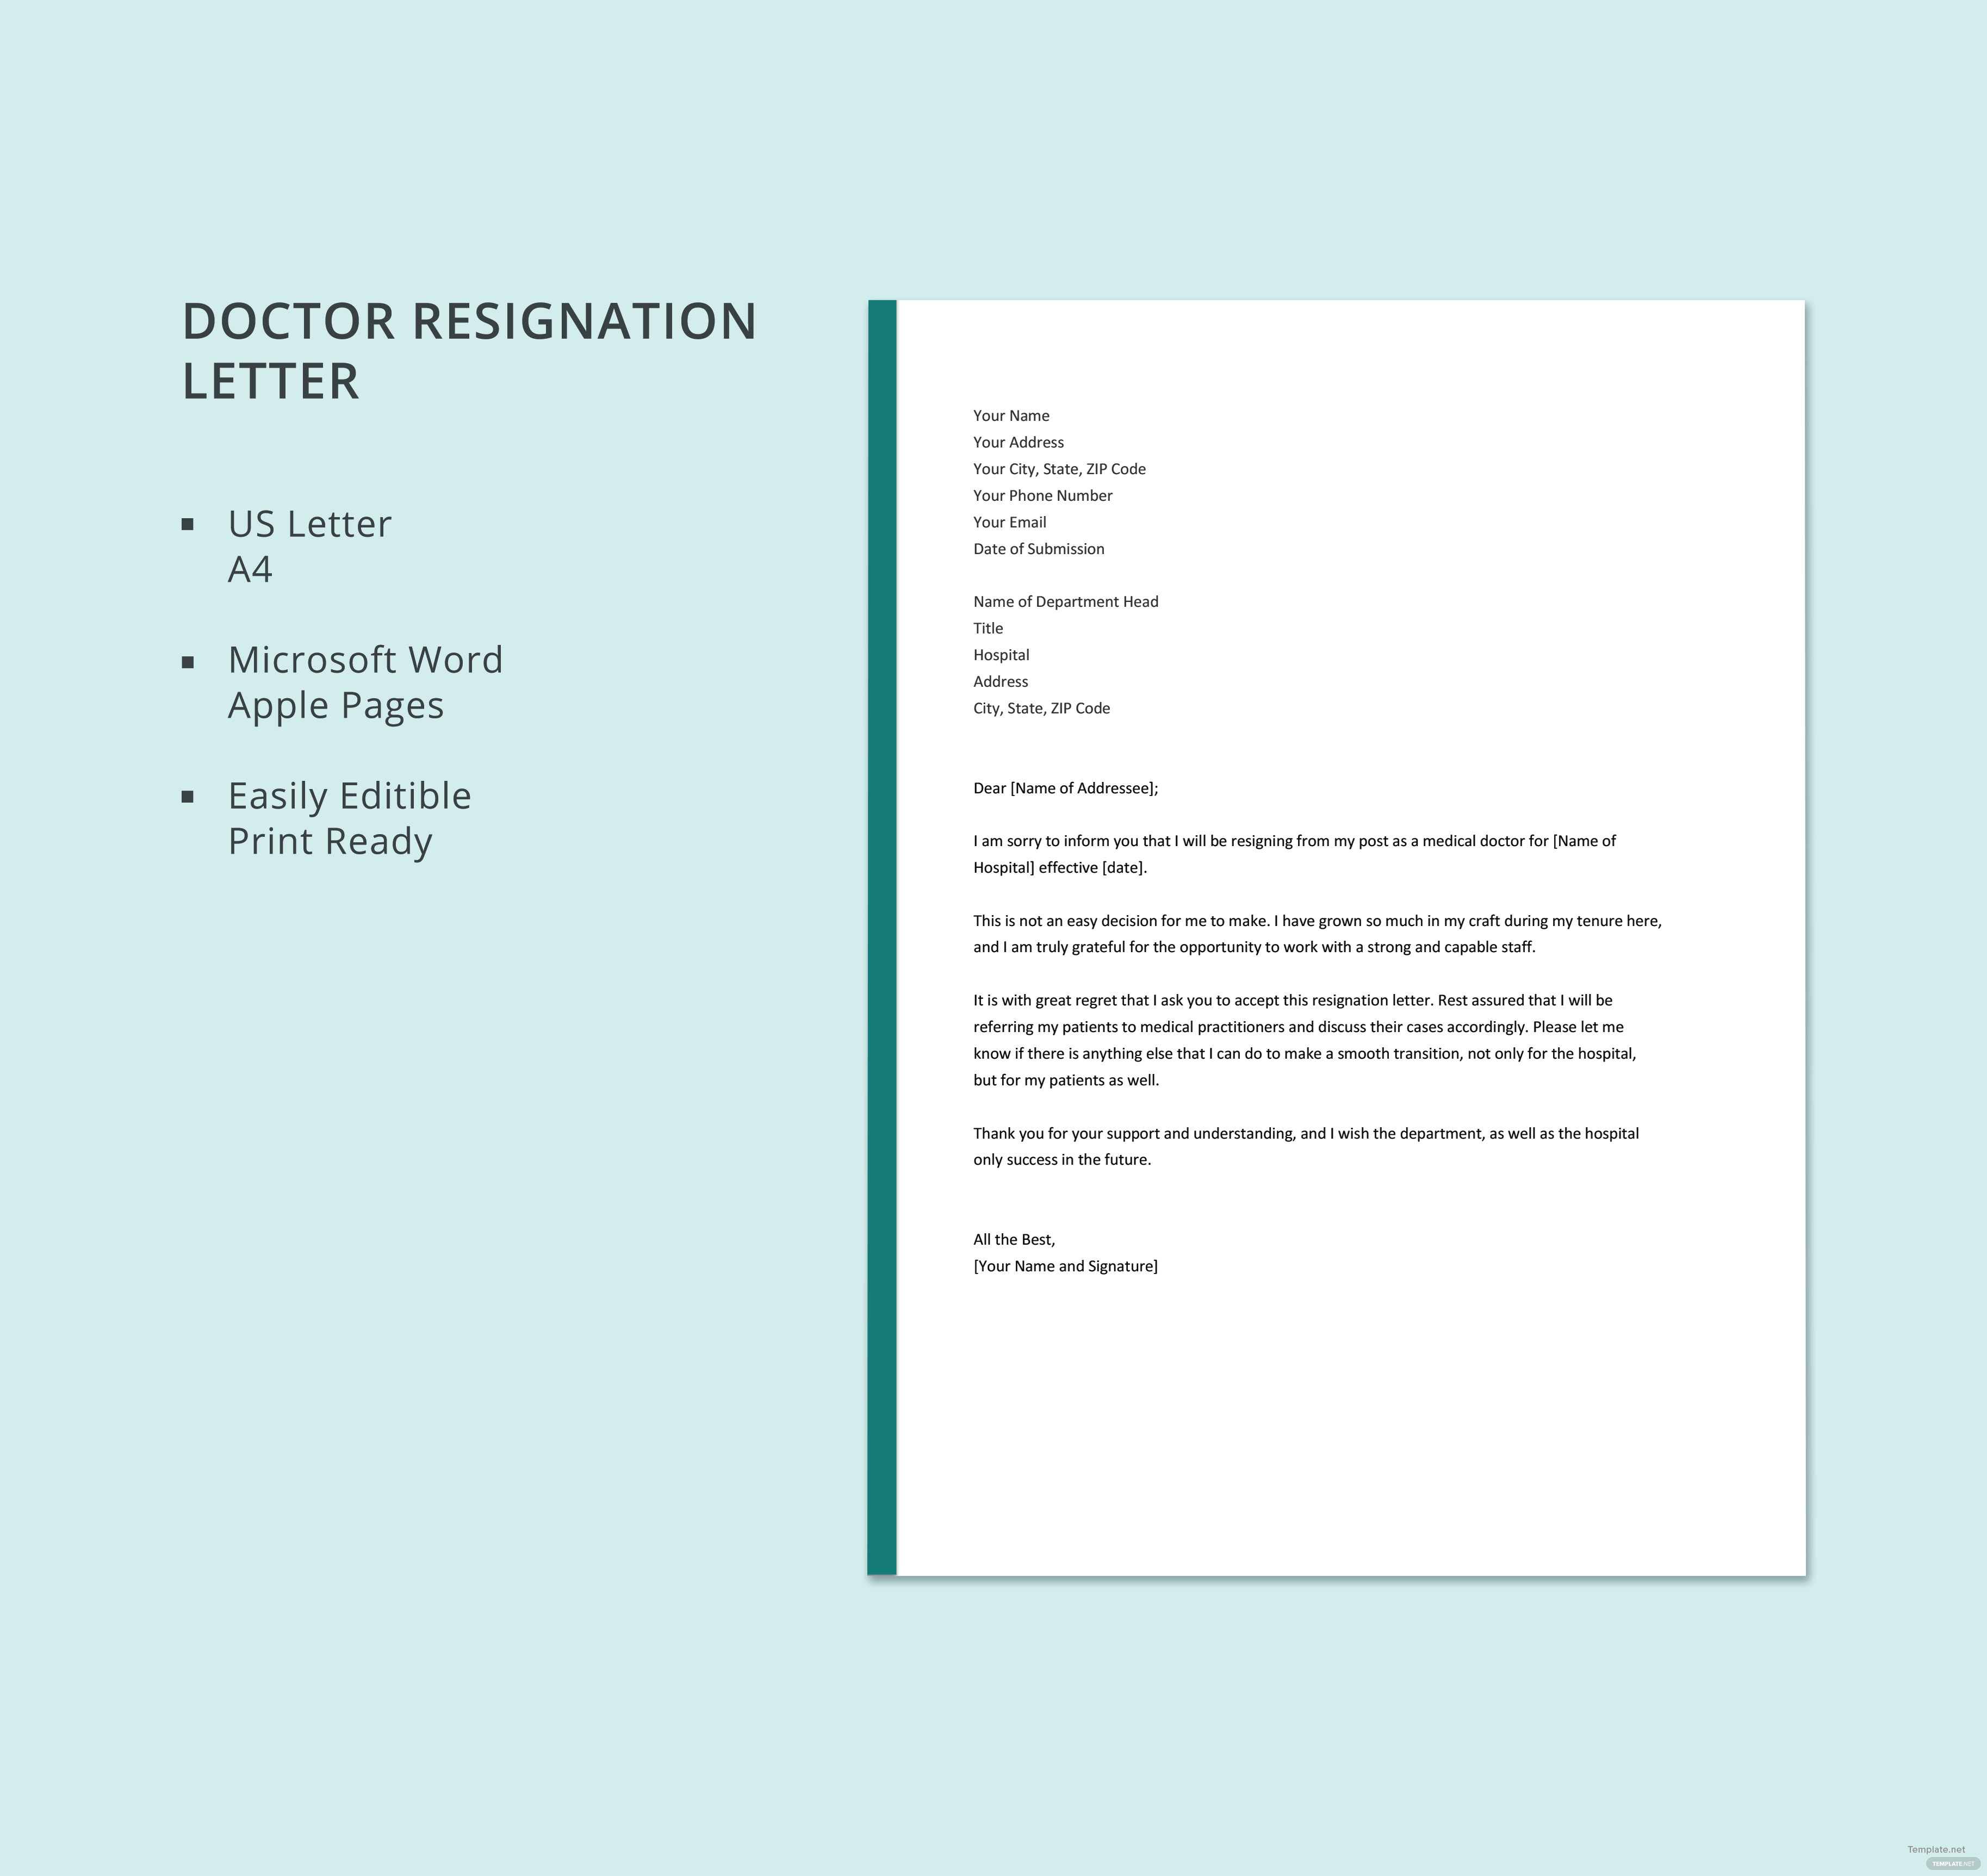 Doctor resignation letter template in microsoft word apple pages doctor resignation letter aljukfo Images